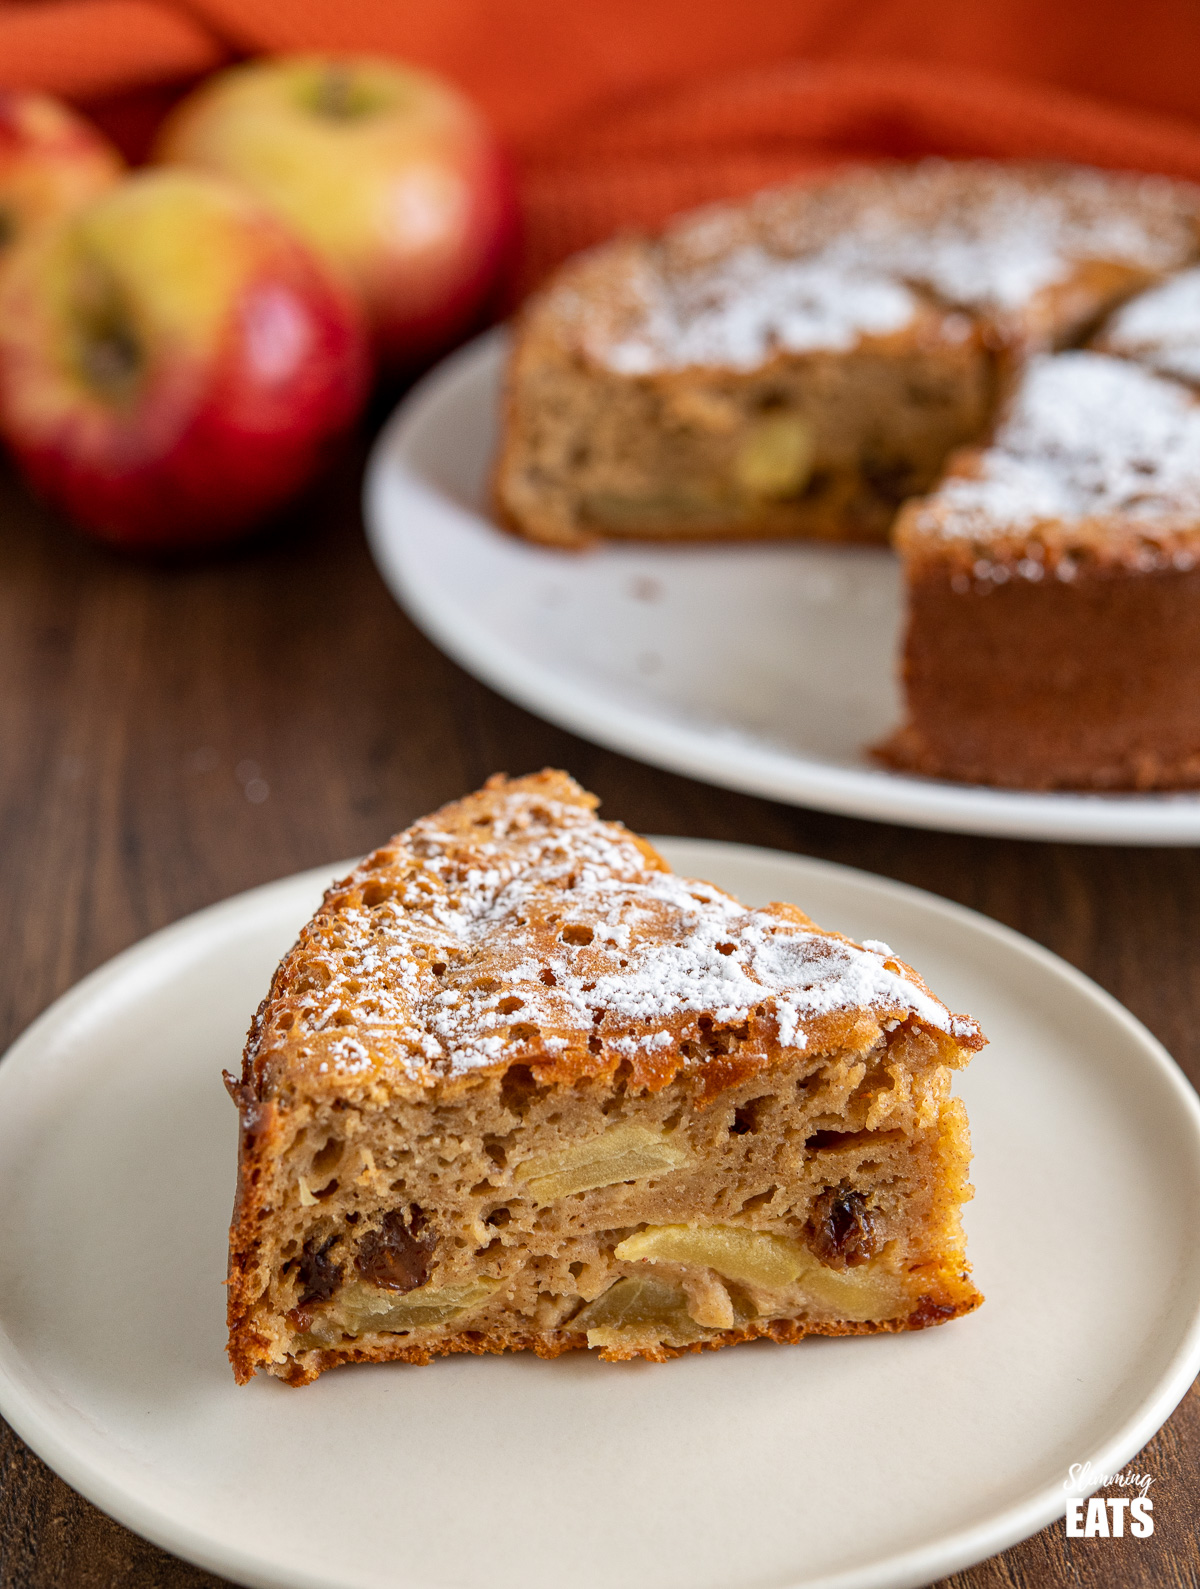 slice of apple sultana cake on white plate with cake and apples in background